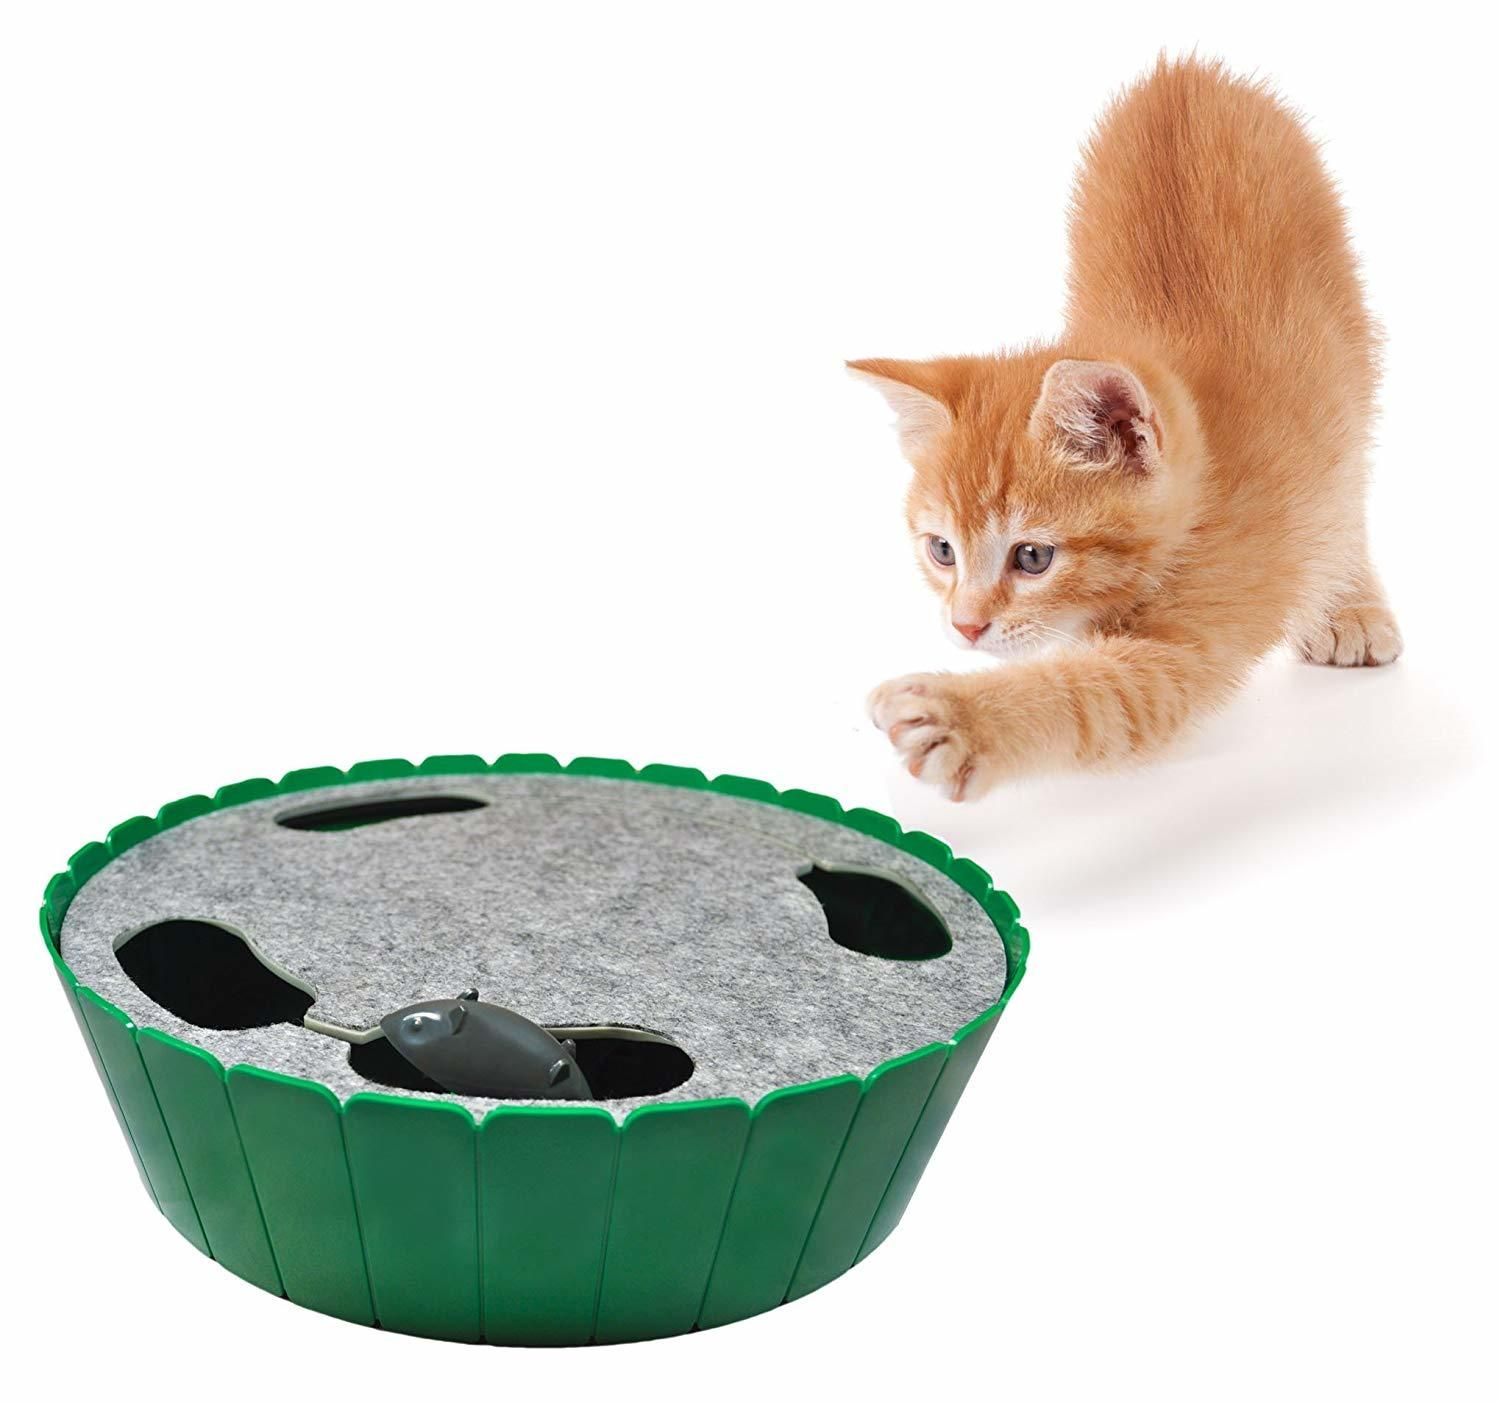 If You Make These Diy Cat Toys You Ll Make Yours The Happiest Kitty On The Planet Interactive Cat Toys Felt Cat Toys Cat Toys